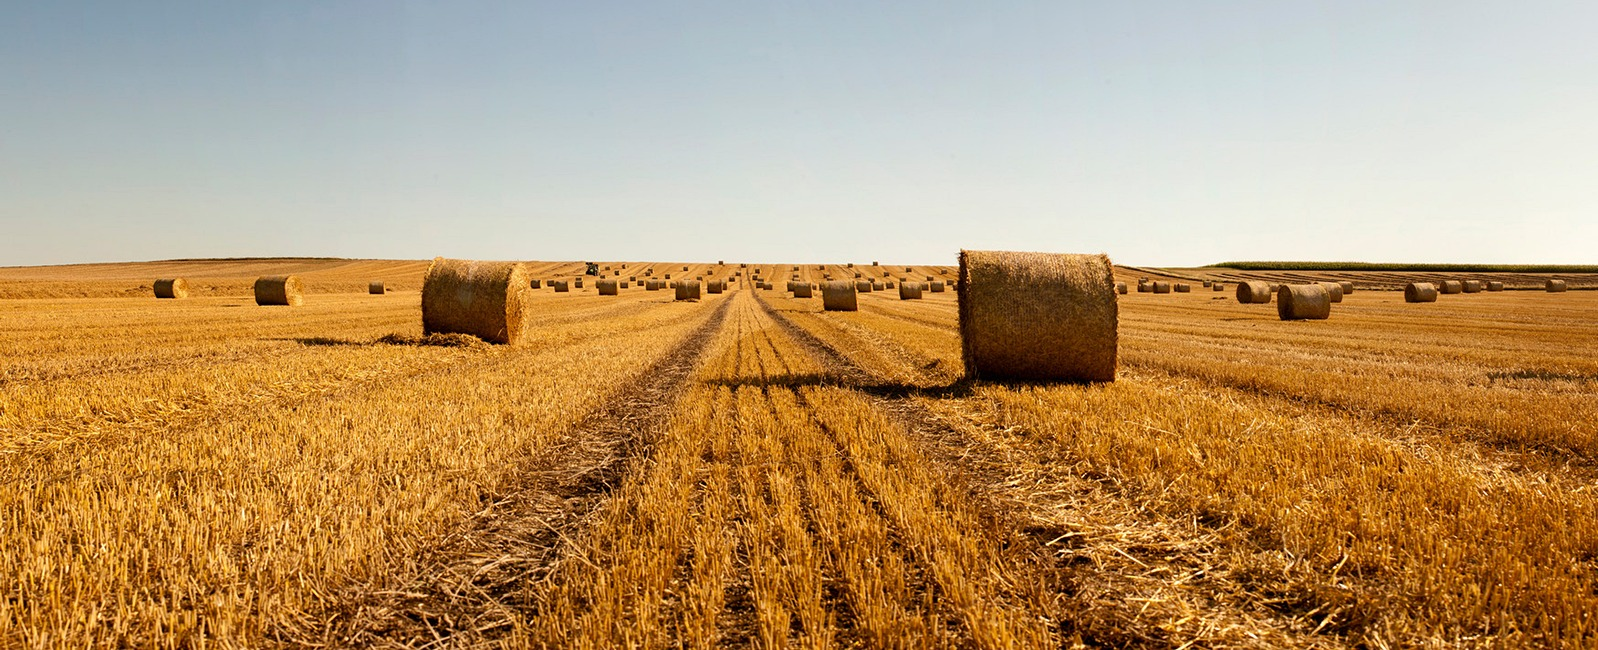 Field with harvest